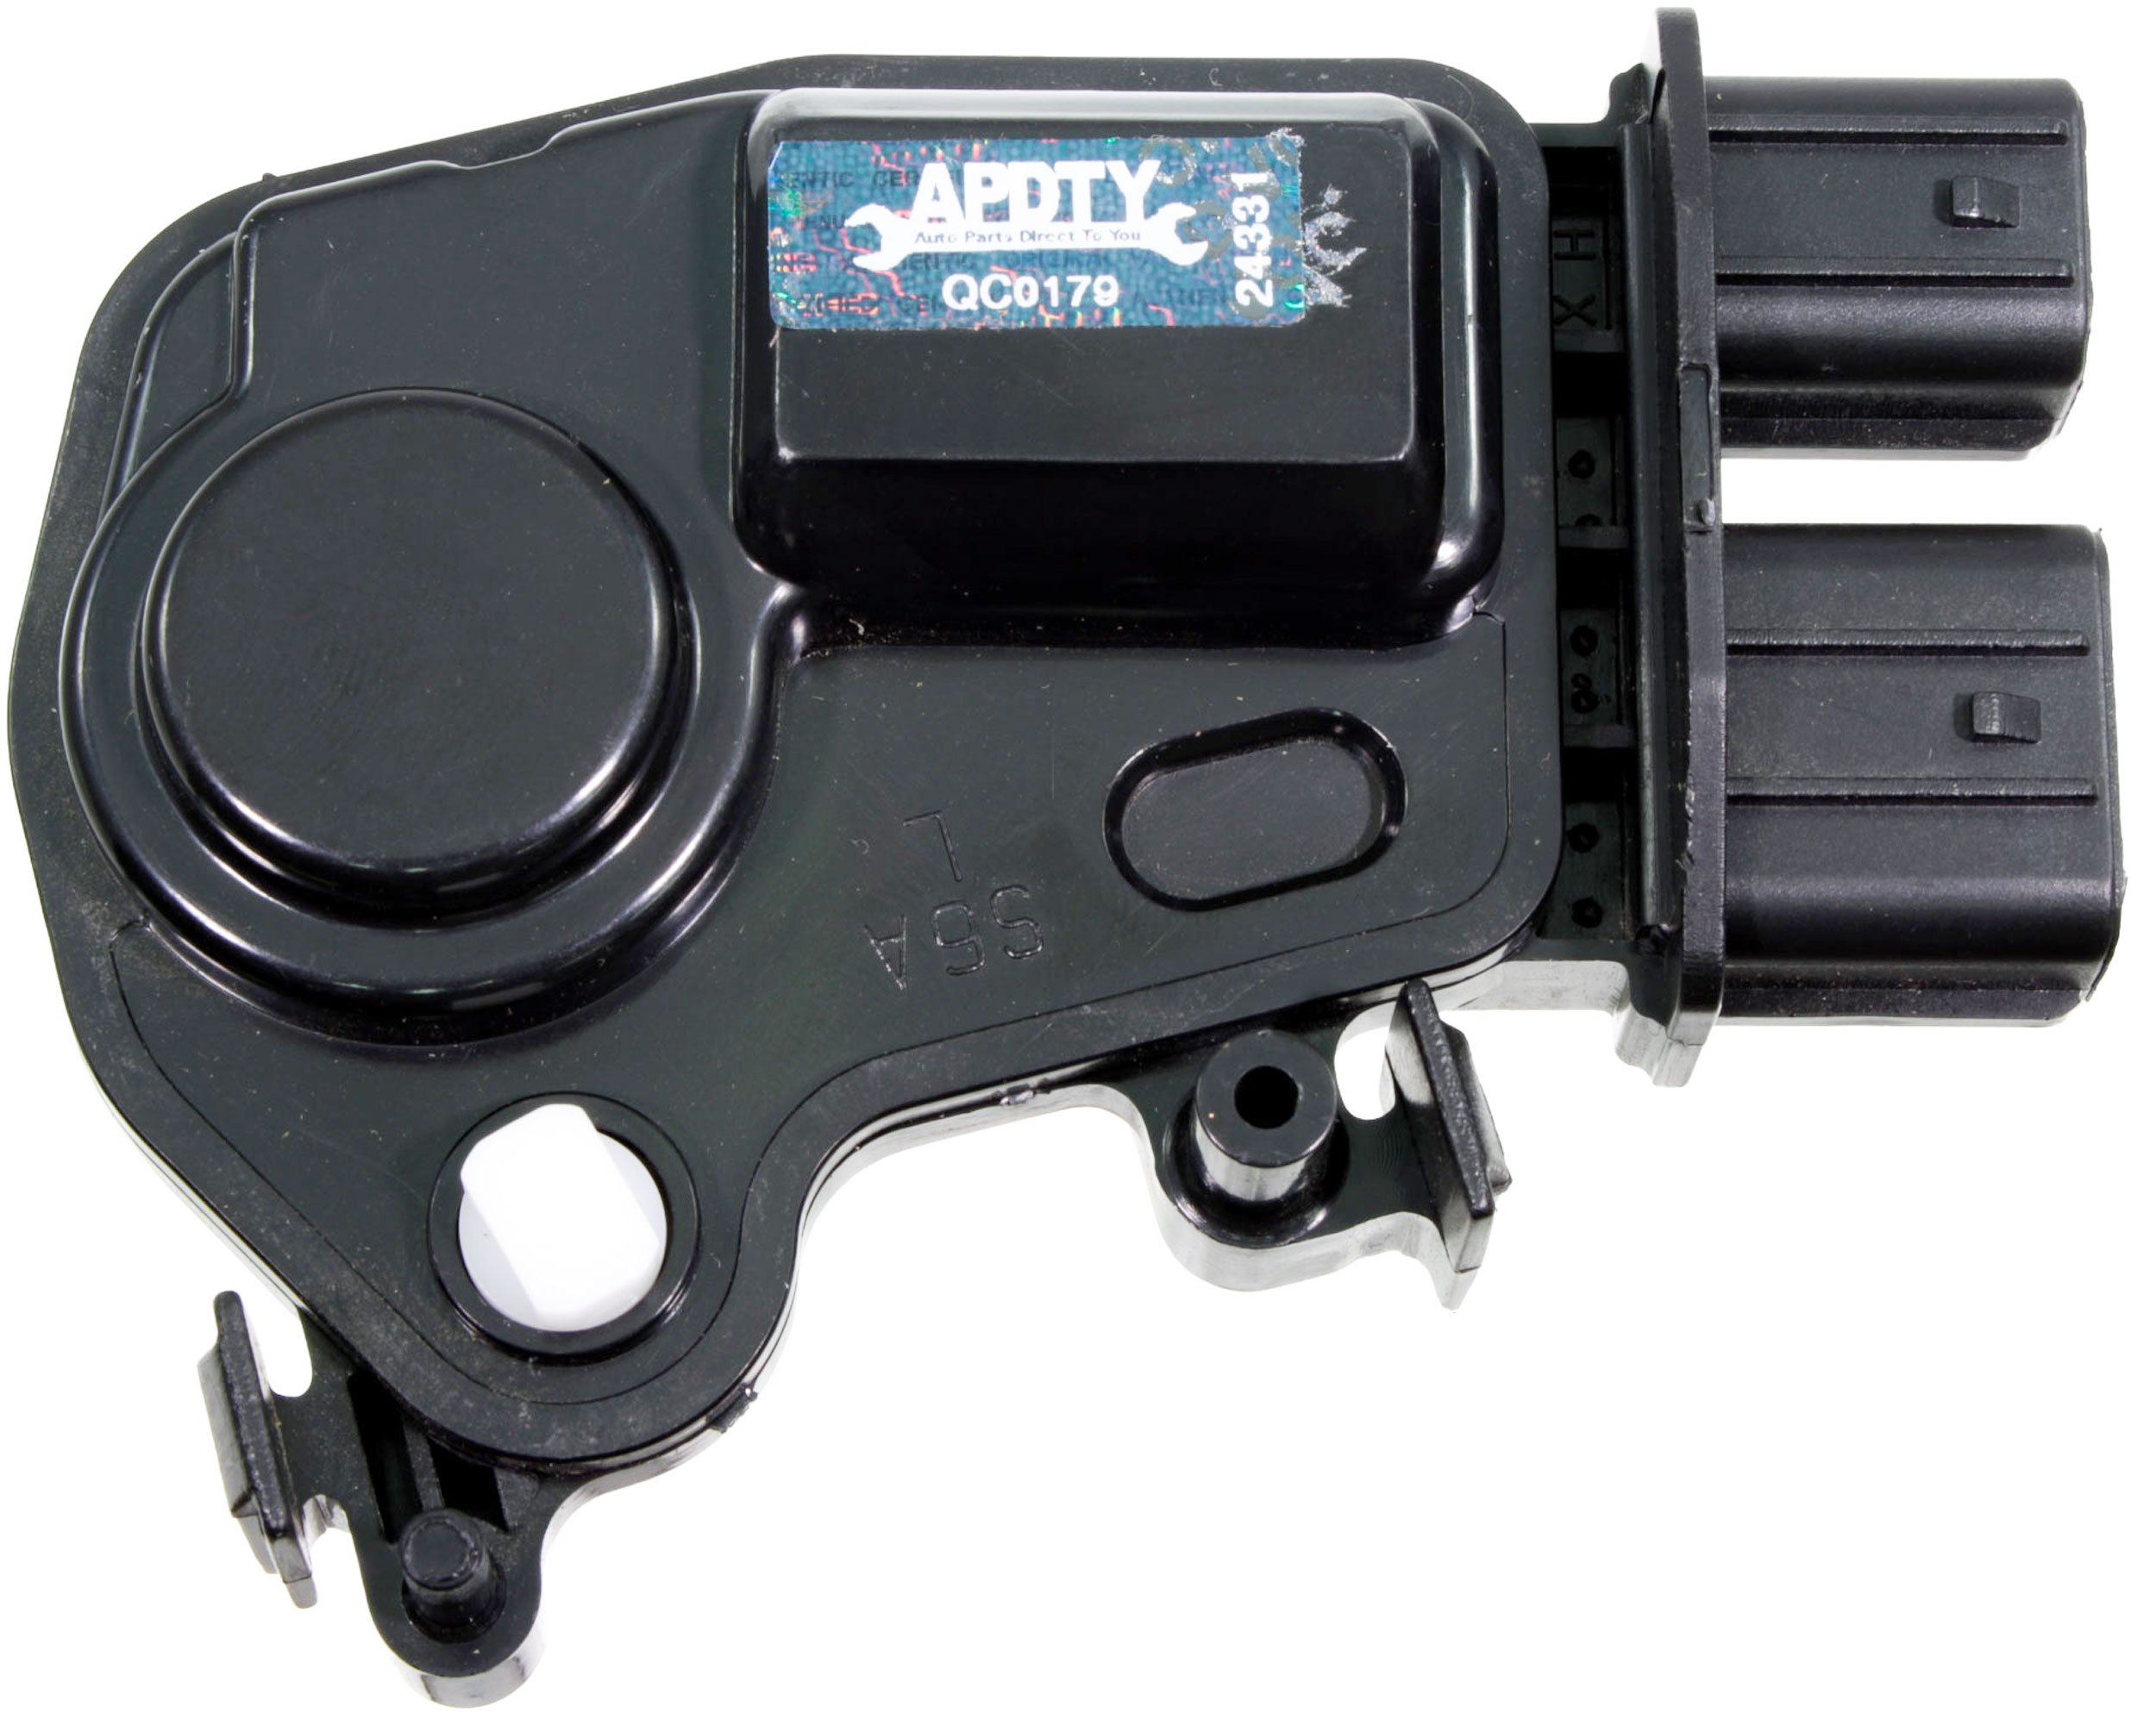 APDTY 857413 Door Lock Actuator Motor Fits Left Driver-Side On Select Honda Models; View Description For Your Specific Model & Position (Replaces Honda 72155-S5P-A11, 72155S5PA11)